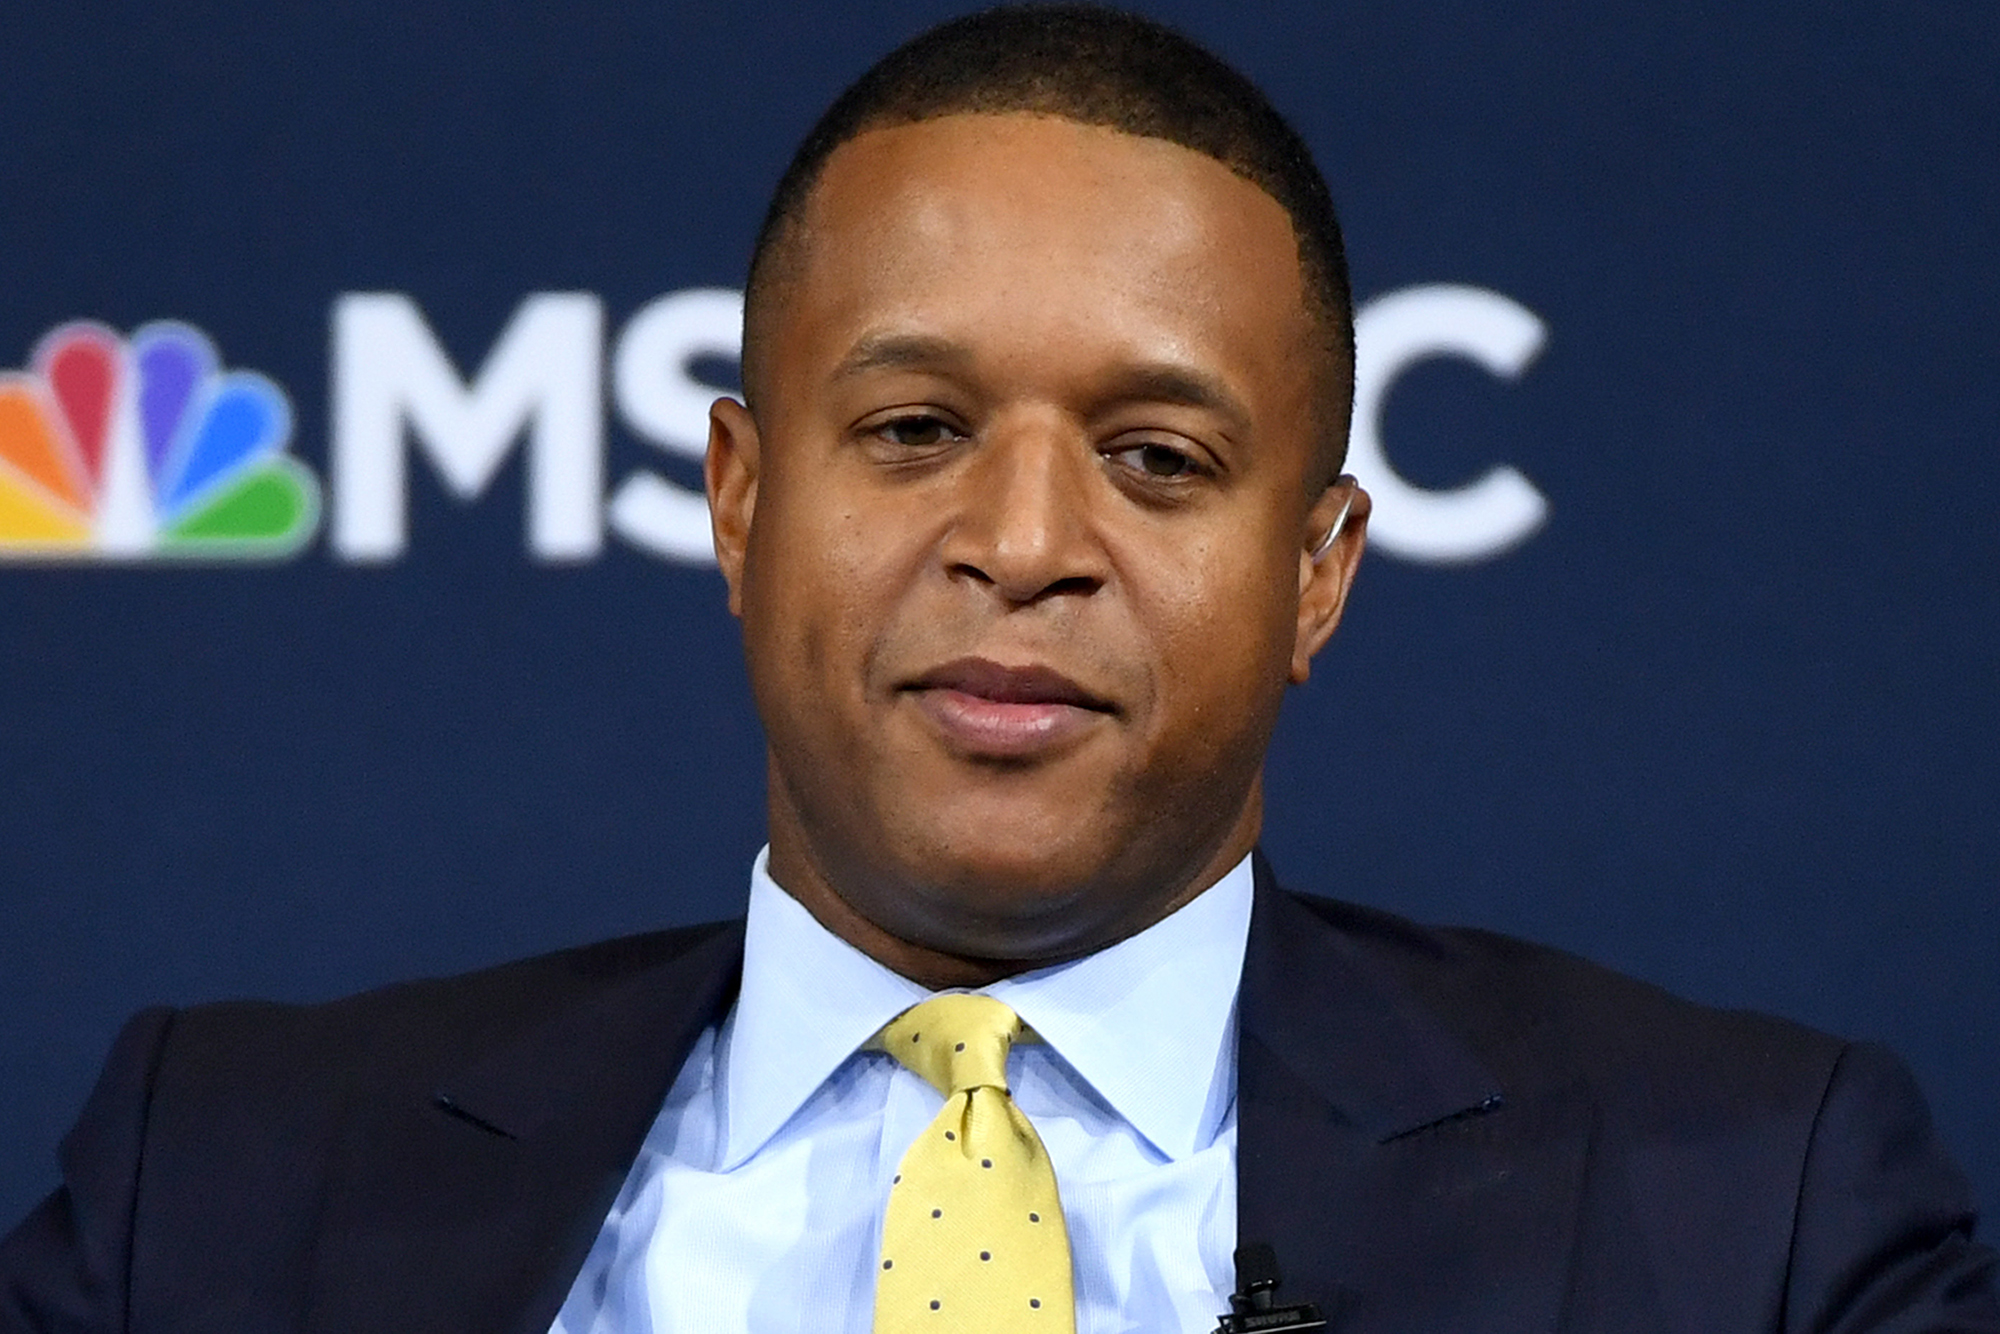 Craig Melvin's brother Lawrence, 43, dead from colon cancer